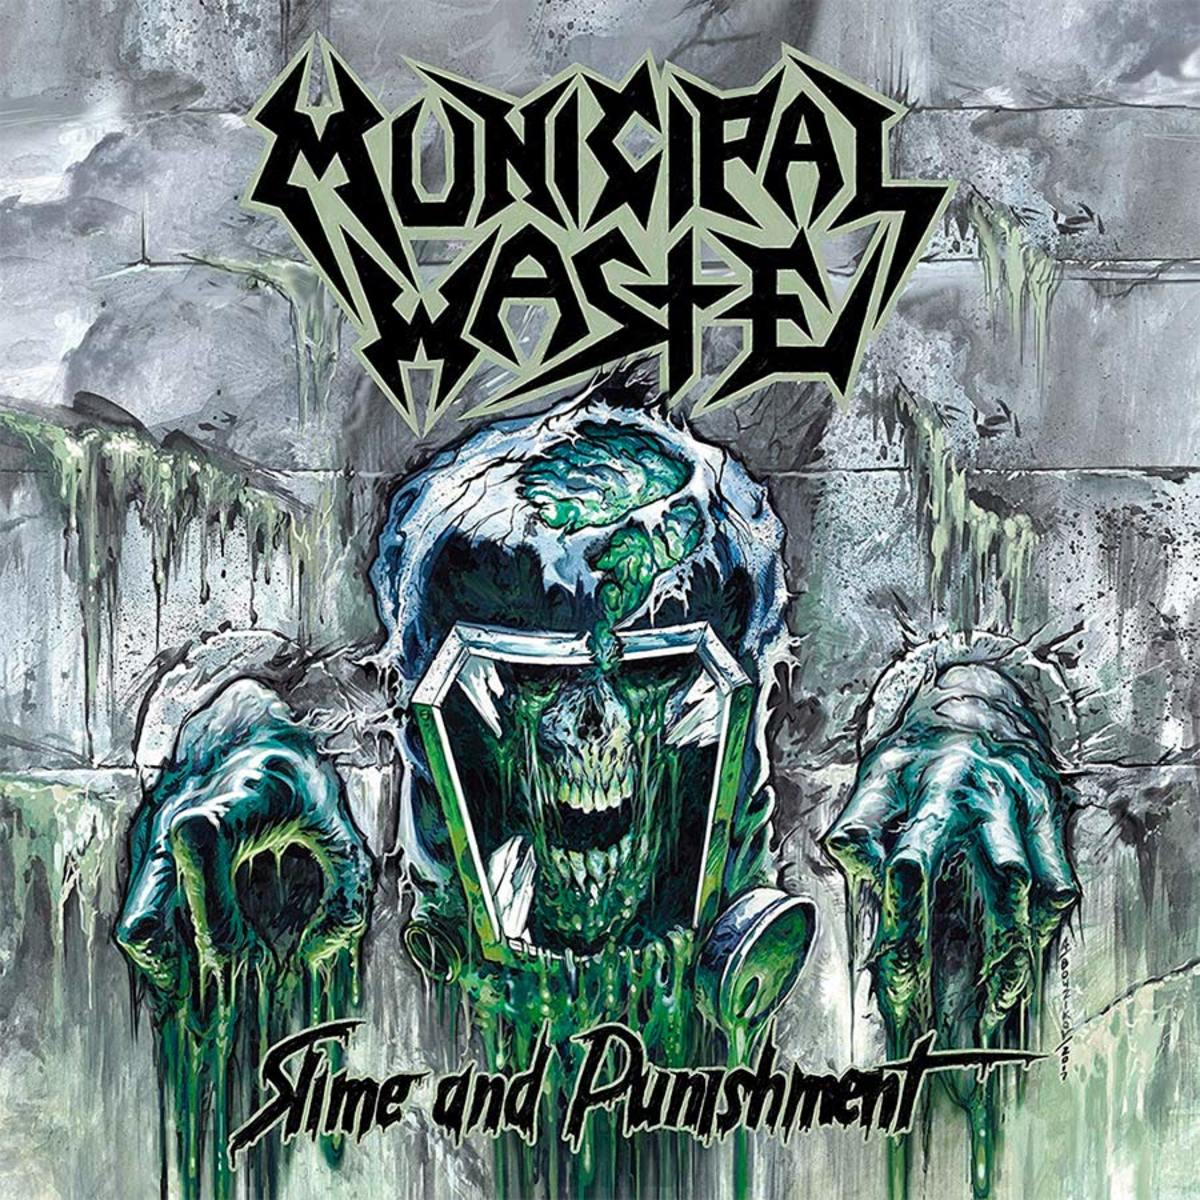 review-of-the-album-slime-and-punishment-by-municipal-waste